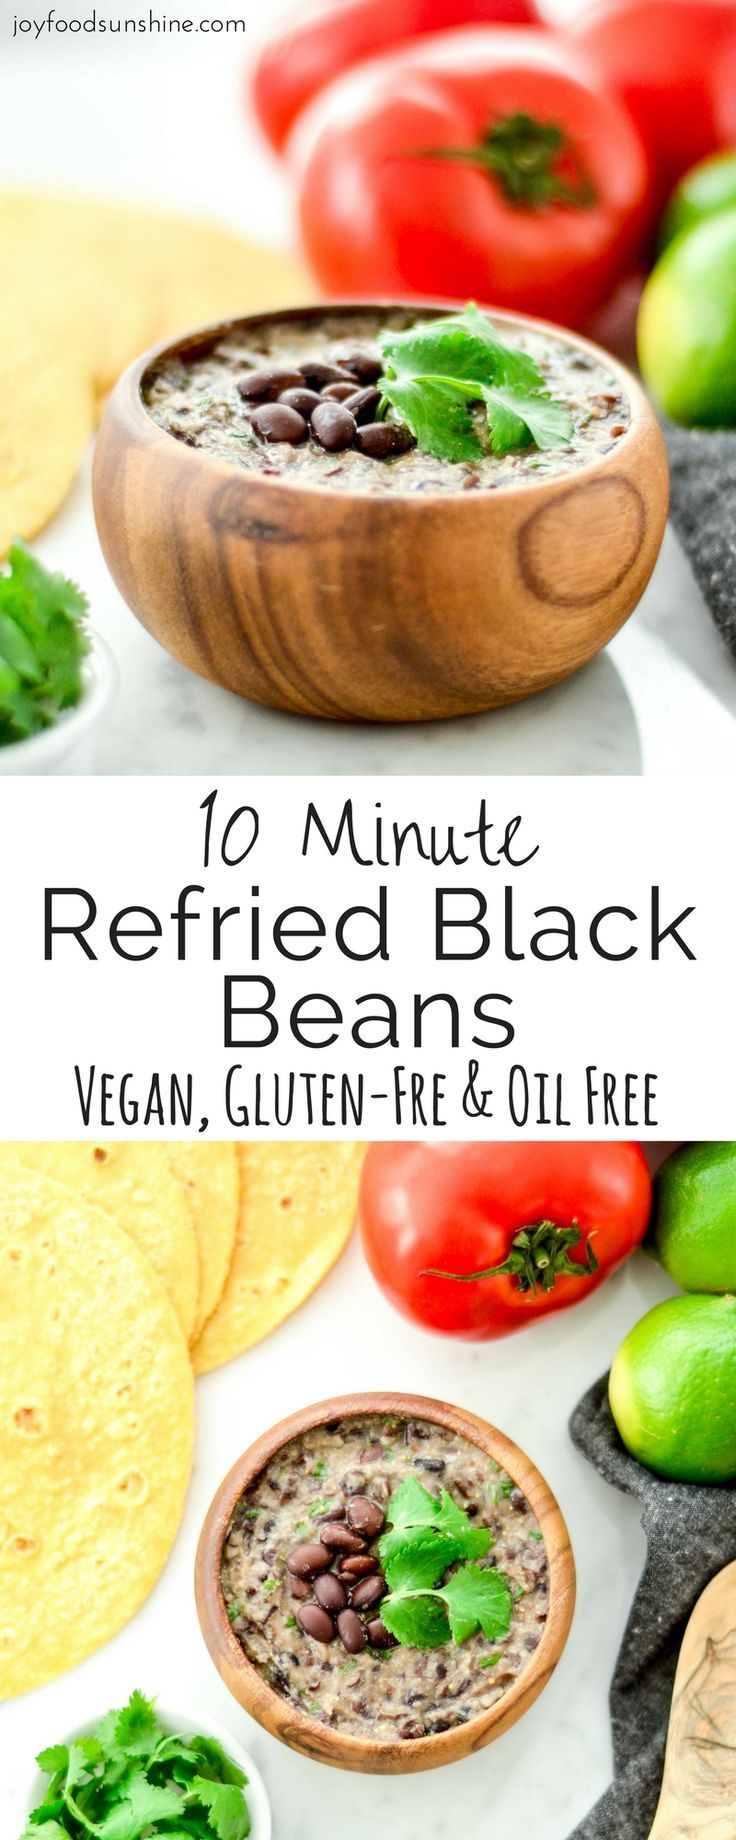 Homemade Refried Black Beans ready in 10 minutes! The perfect addition to your family taco nights! Vegan, gluten-free